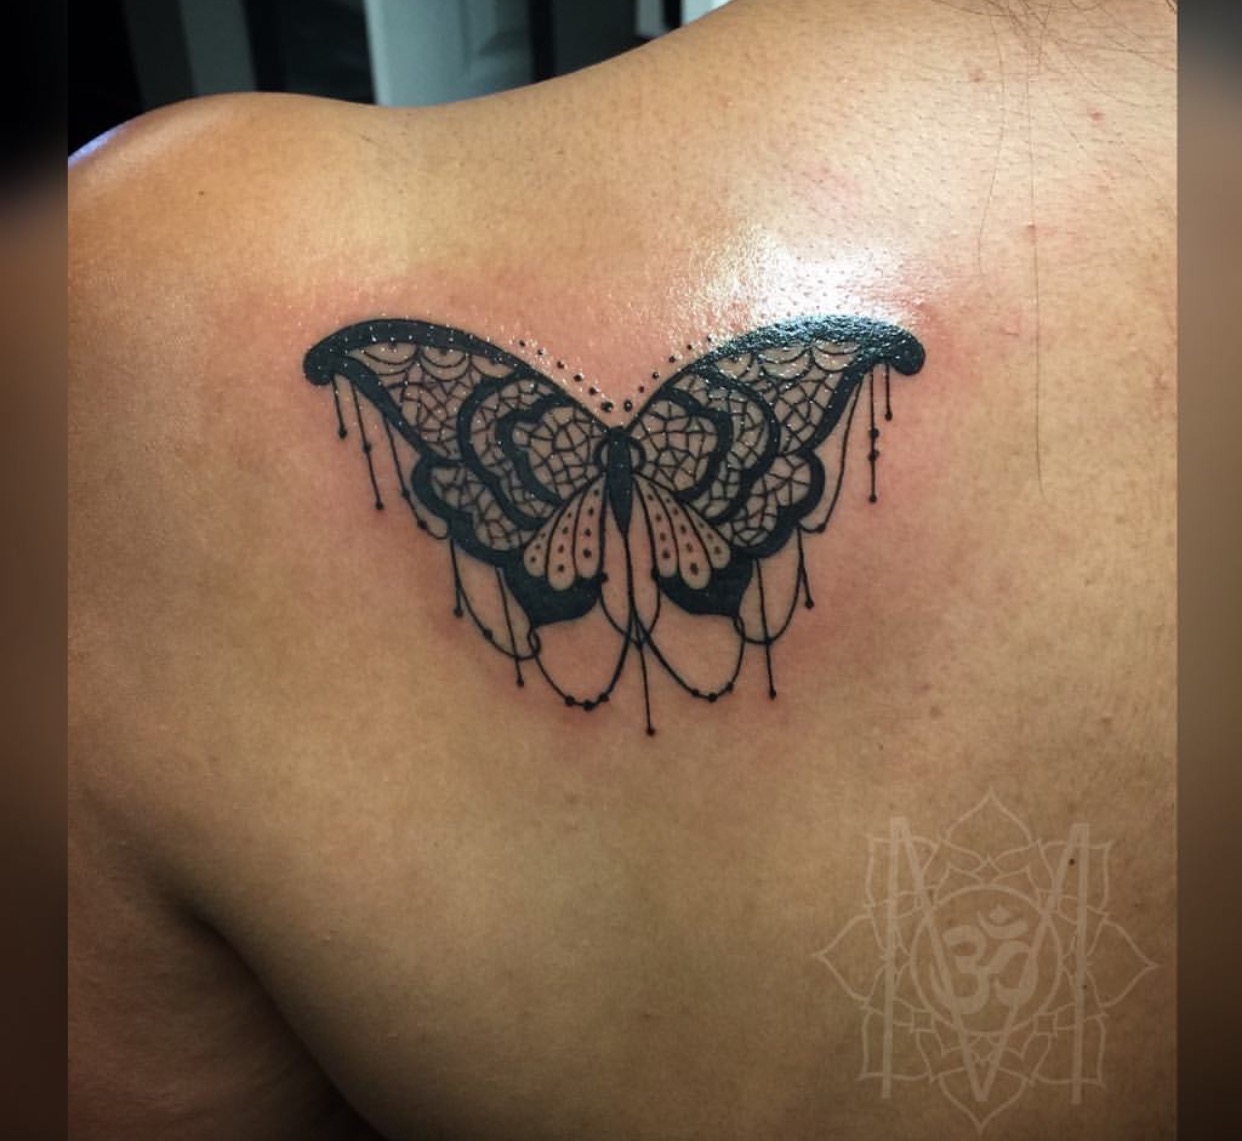 Mo Southern — Artifact Tattoo Ideas And Designs